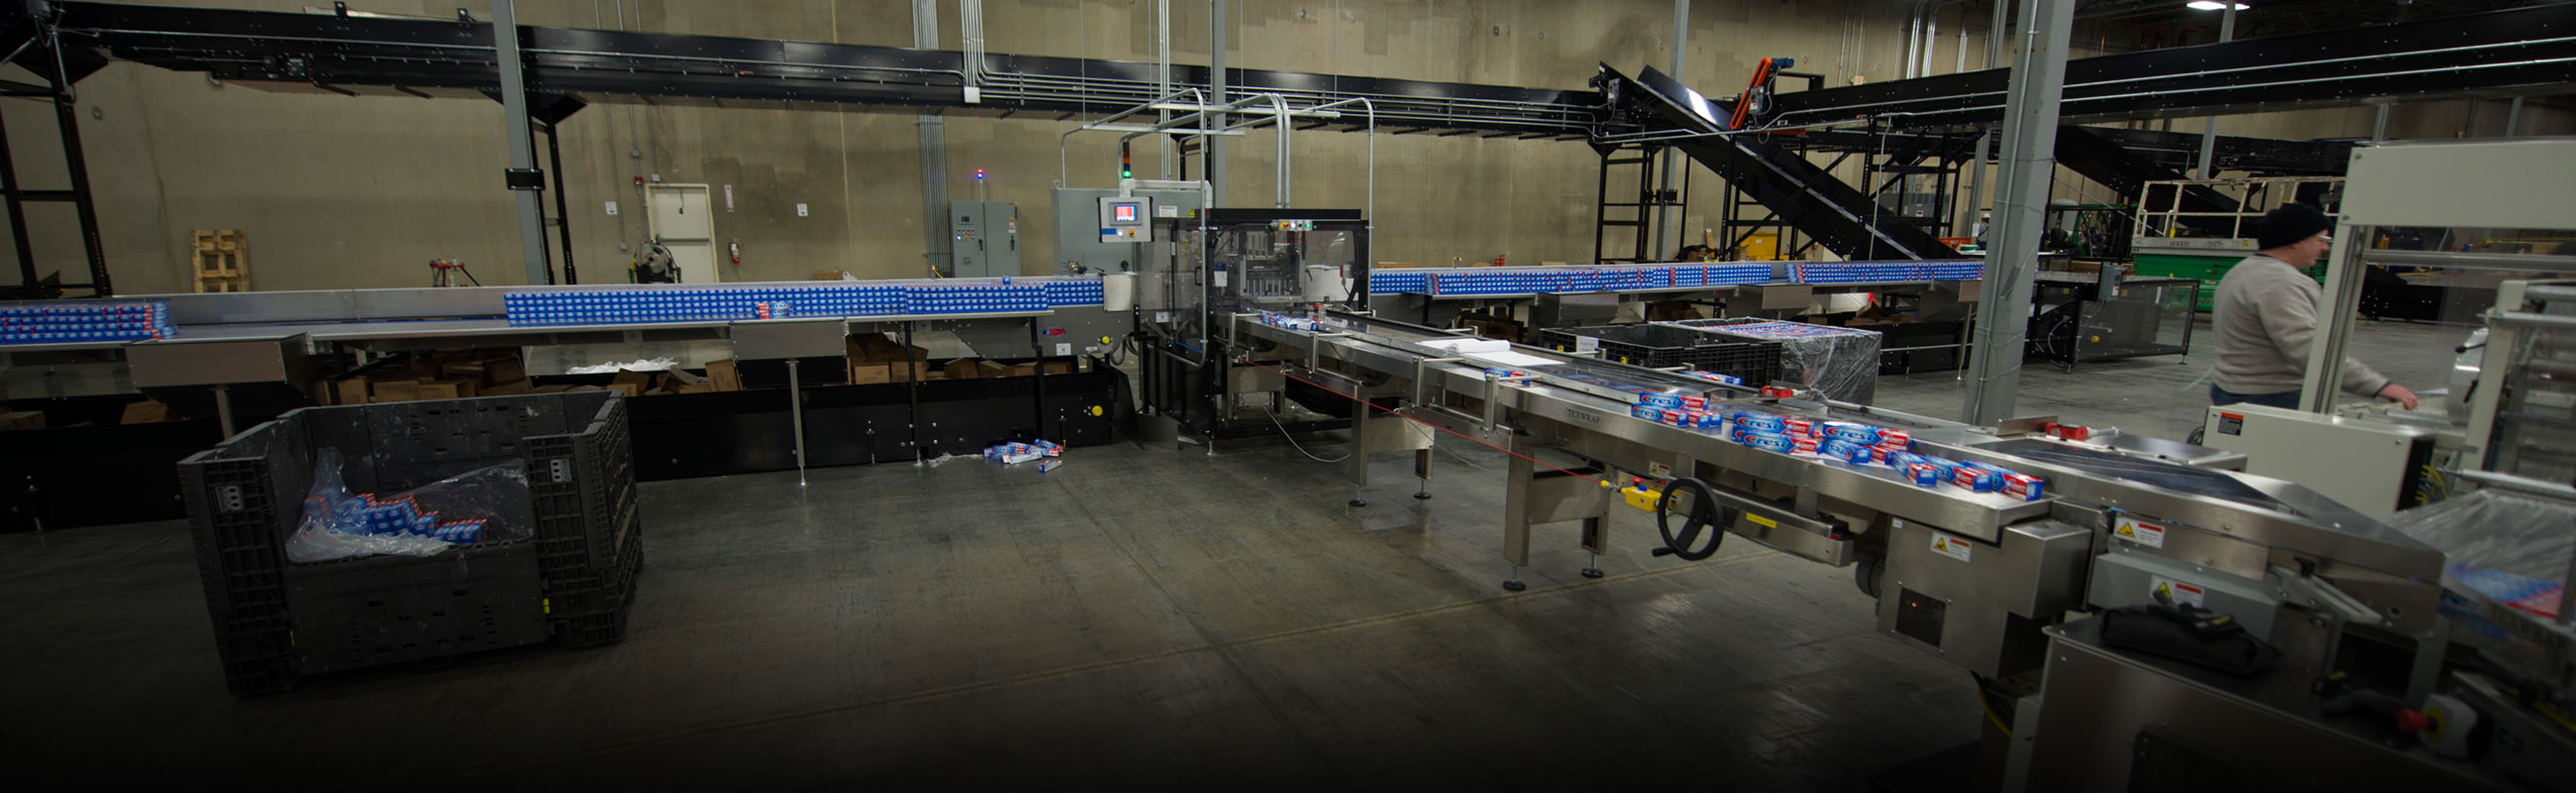 Contract packaging equipment materials expertise